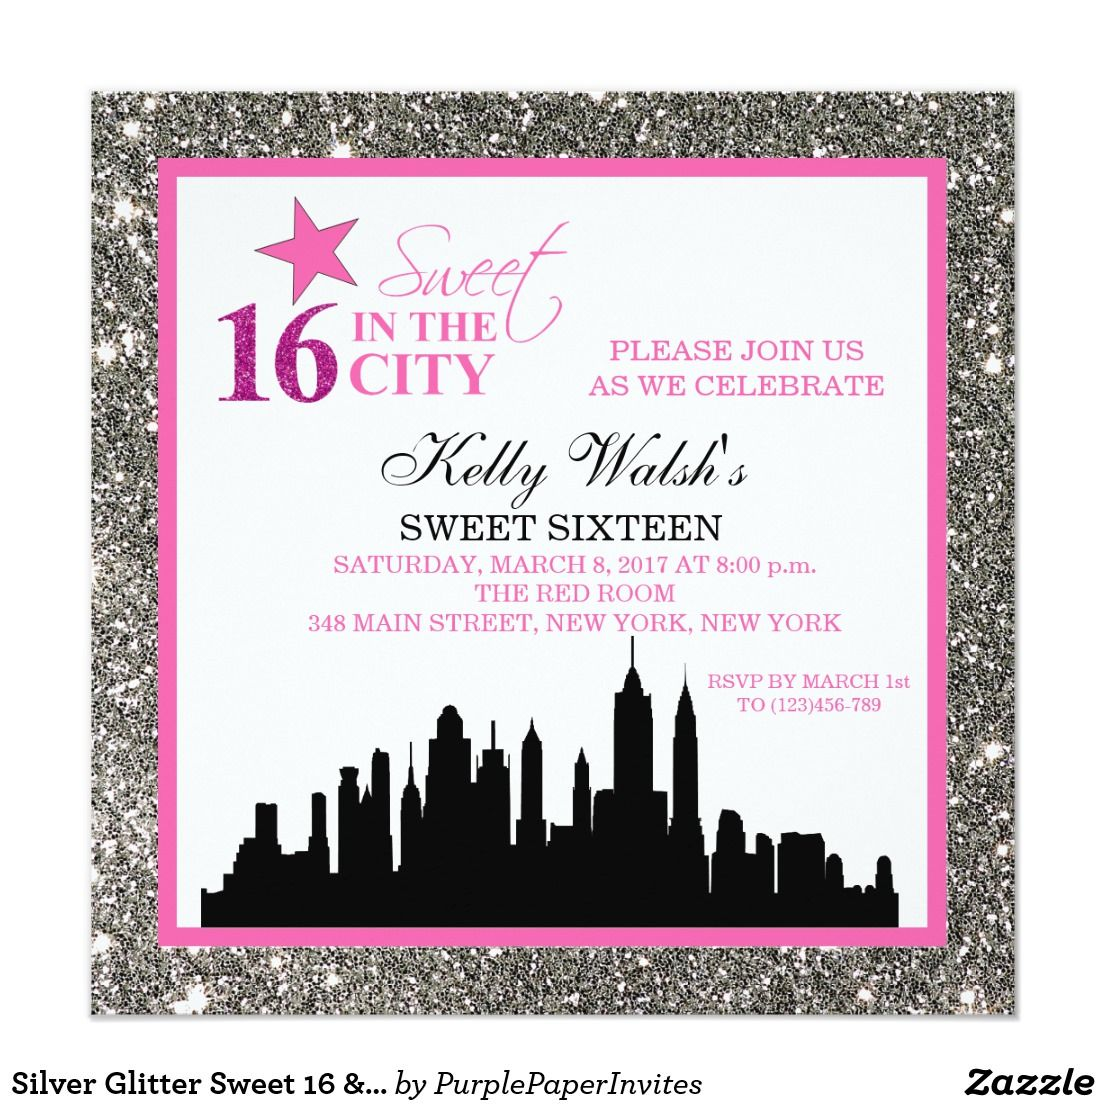 Silver Glitter Sweet 16 & The City Invitation | { Happy Birthday ...